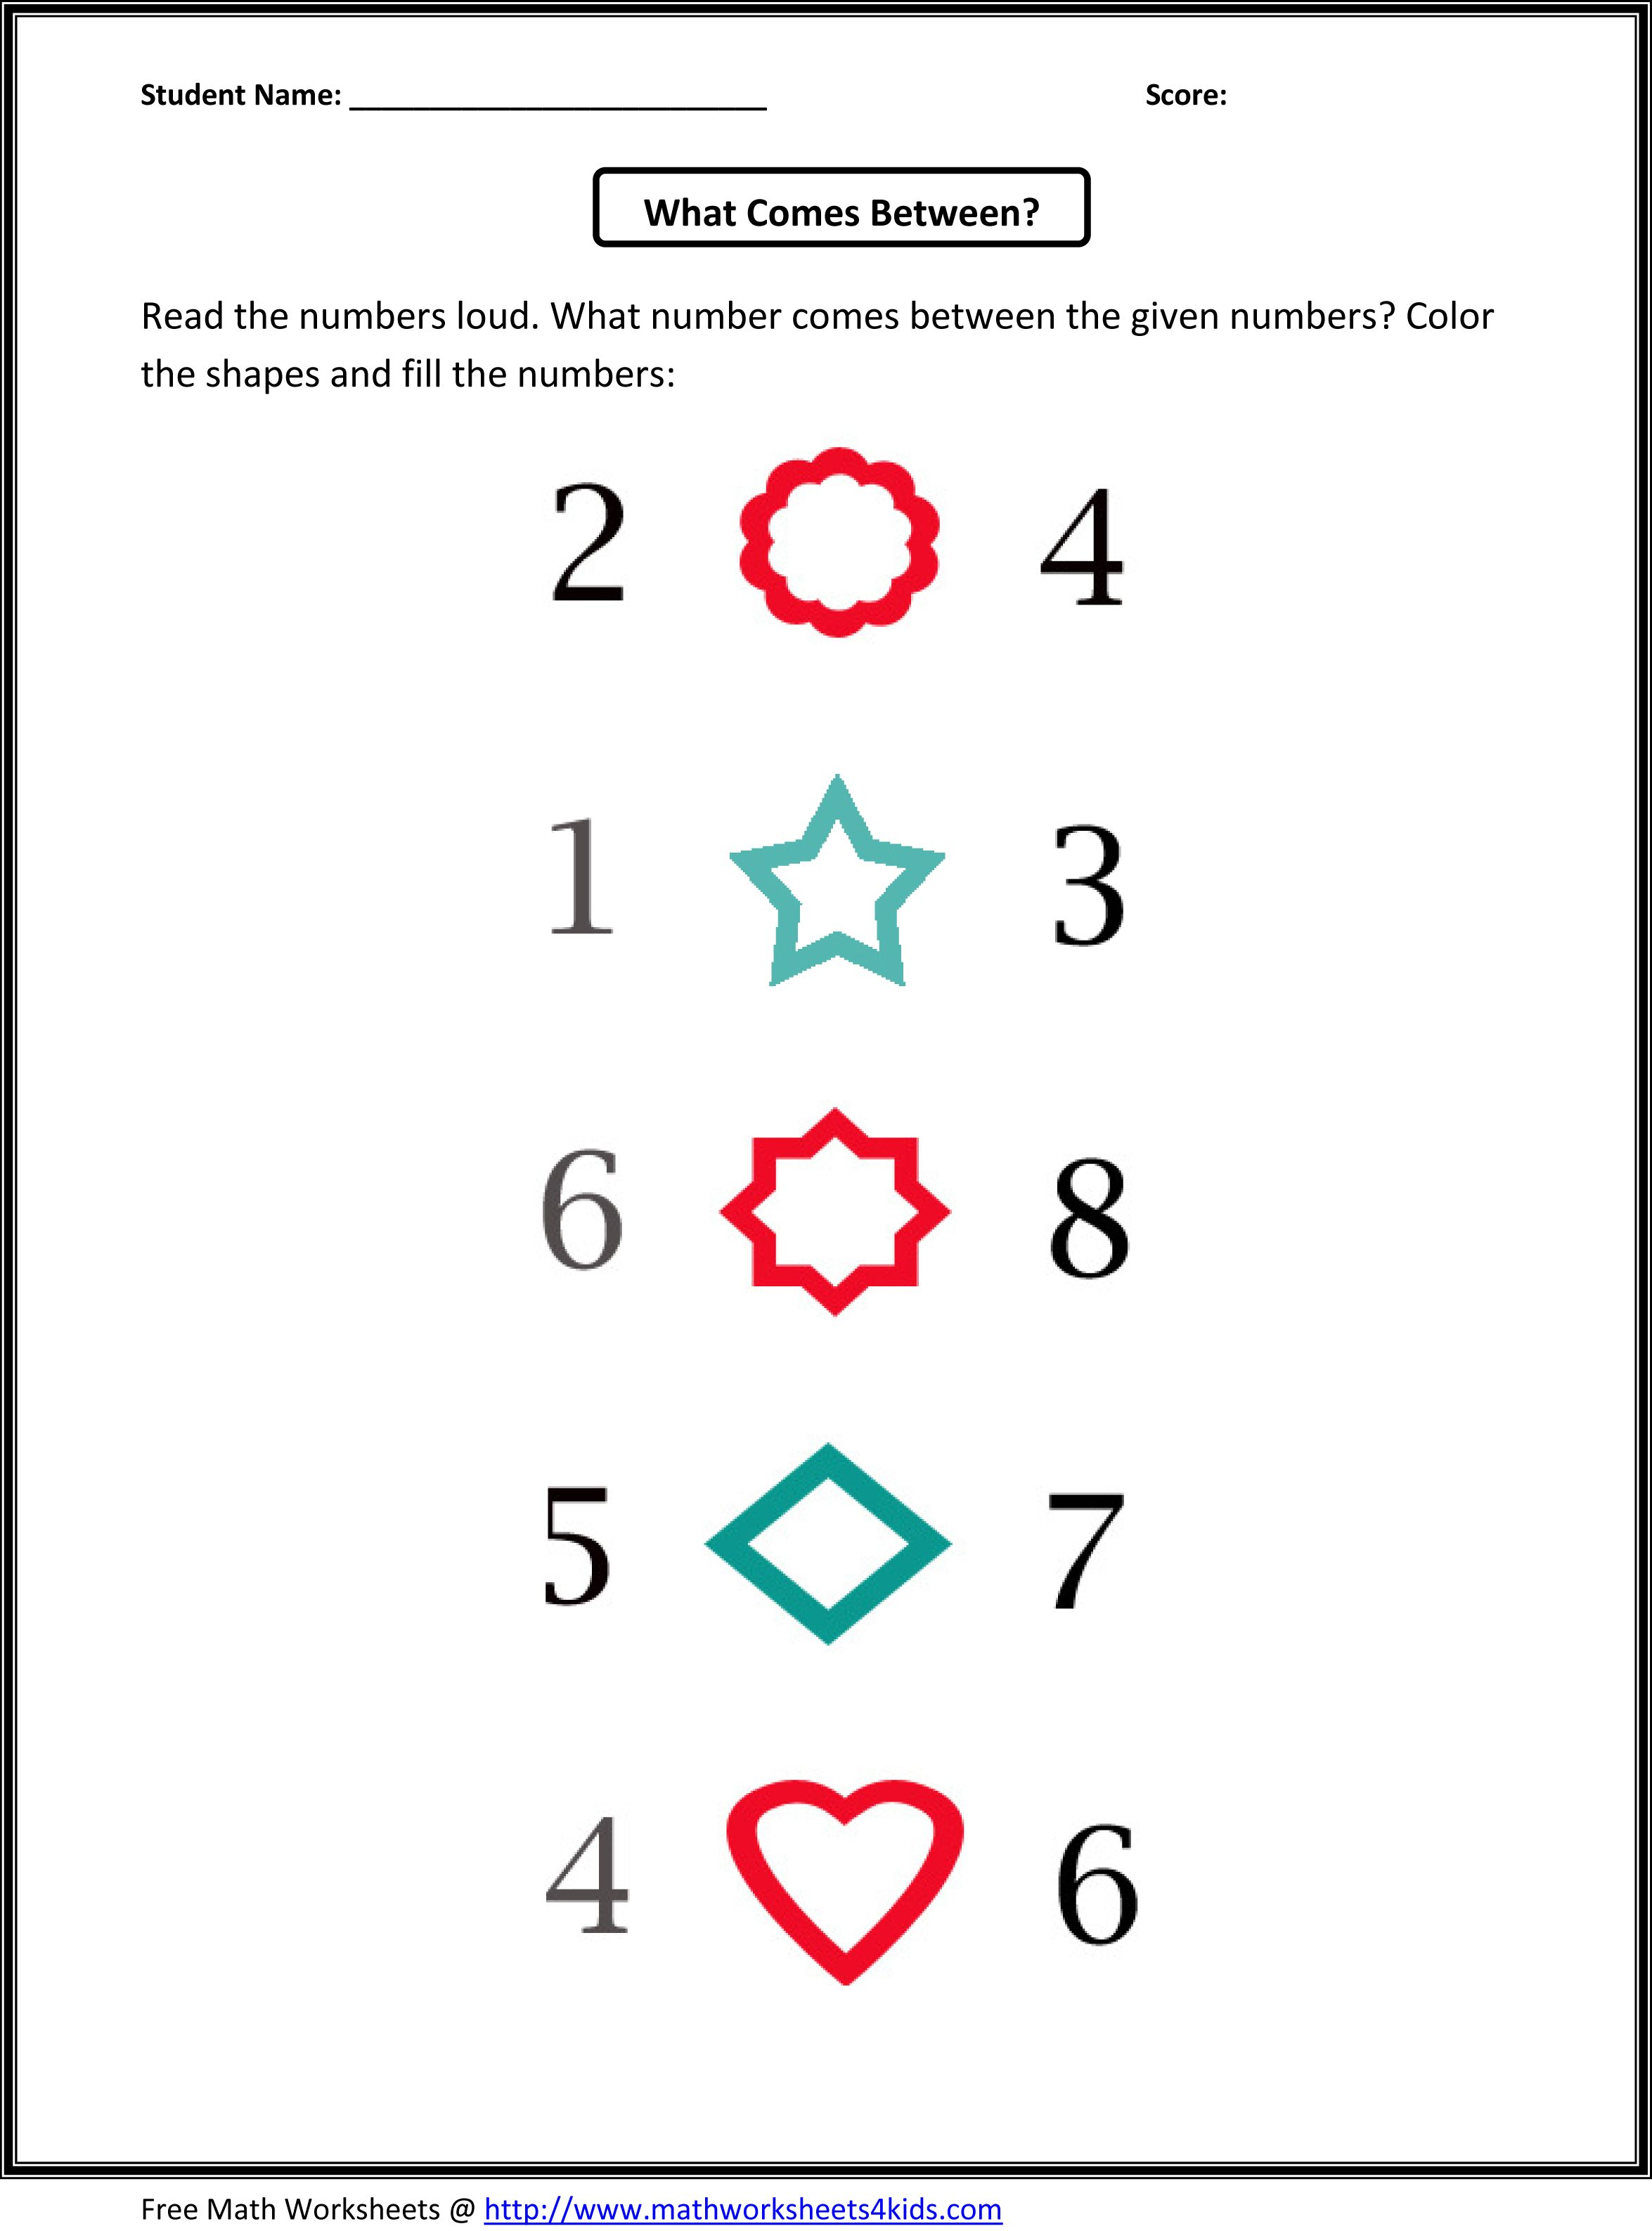 Kindergarten Counting Worksheets 1-10   patterns worksheets picture and  number patt…   Pattern worksheets for kindergarten [ 3174 x 2350 Pixel ]